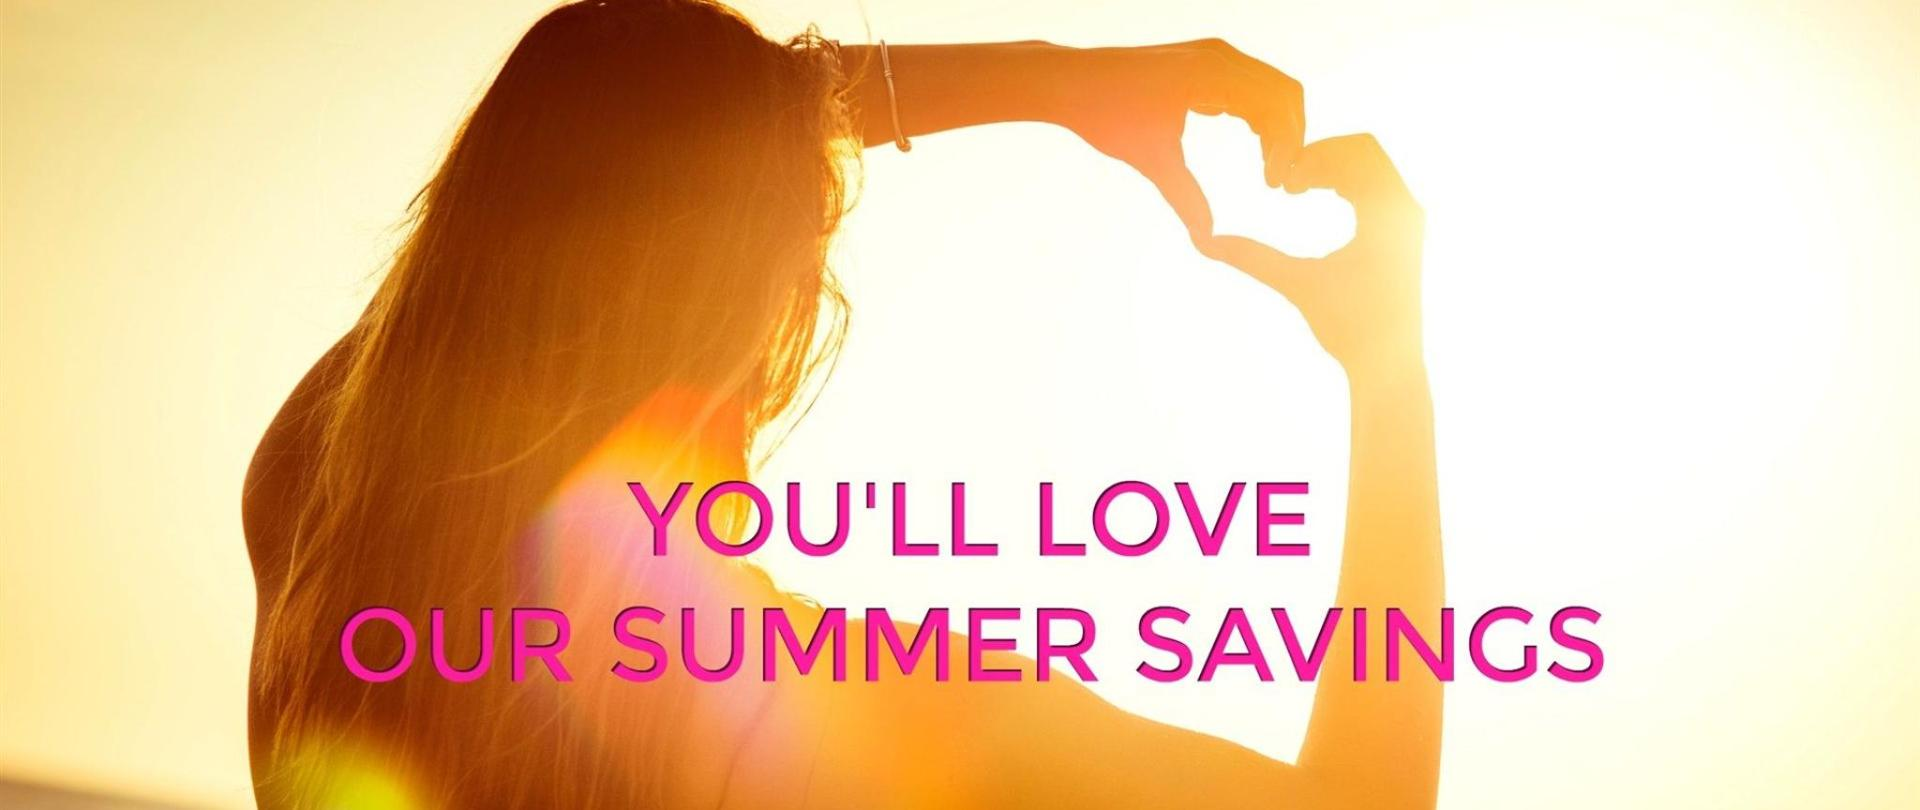 2017_18-you-ll-love-our-summer-savings.jpg